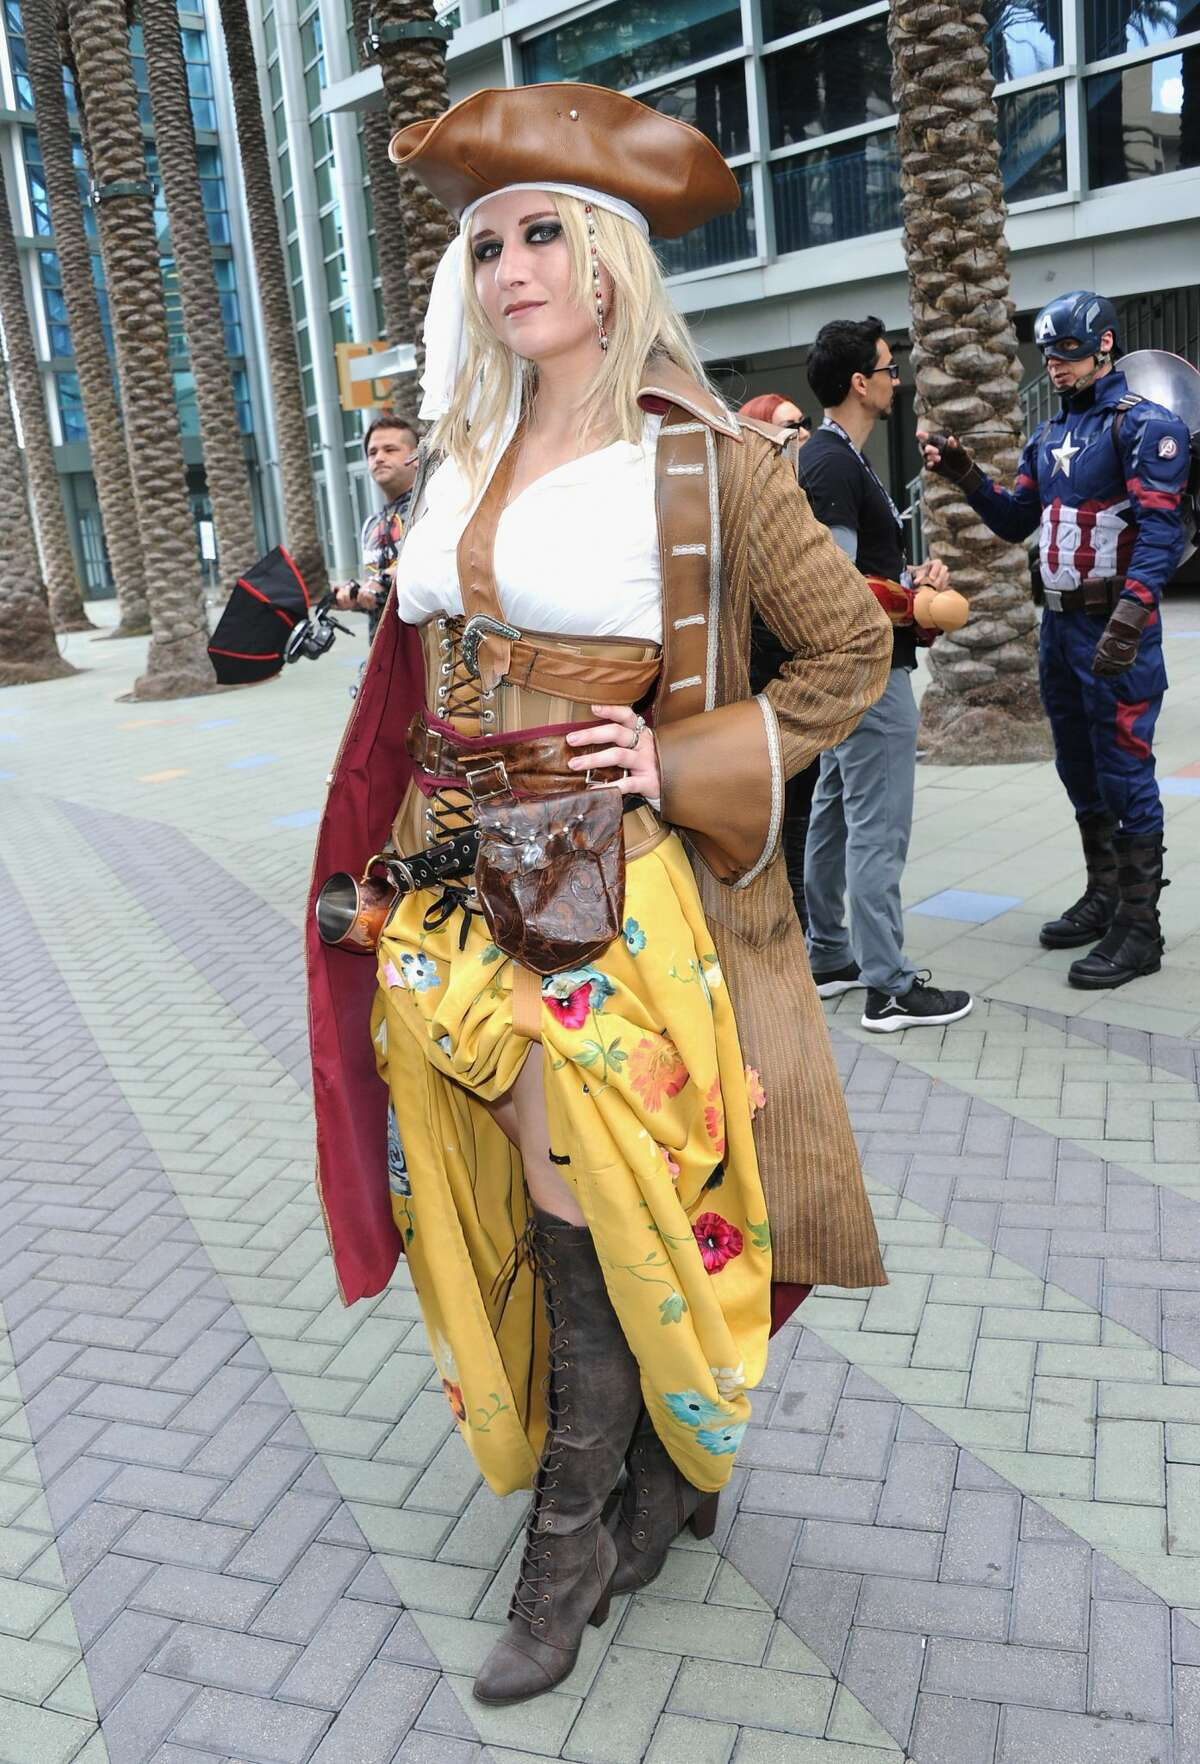 Cosplayers attend Day 1 of WonderCon held at Anaheim Convention Center on March 23, 2018 in Anaheim, California.